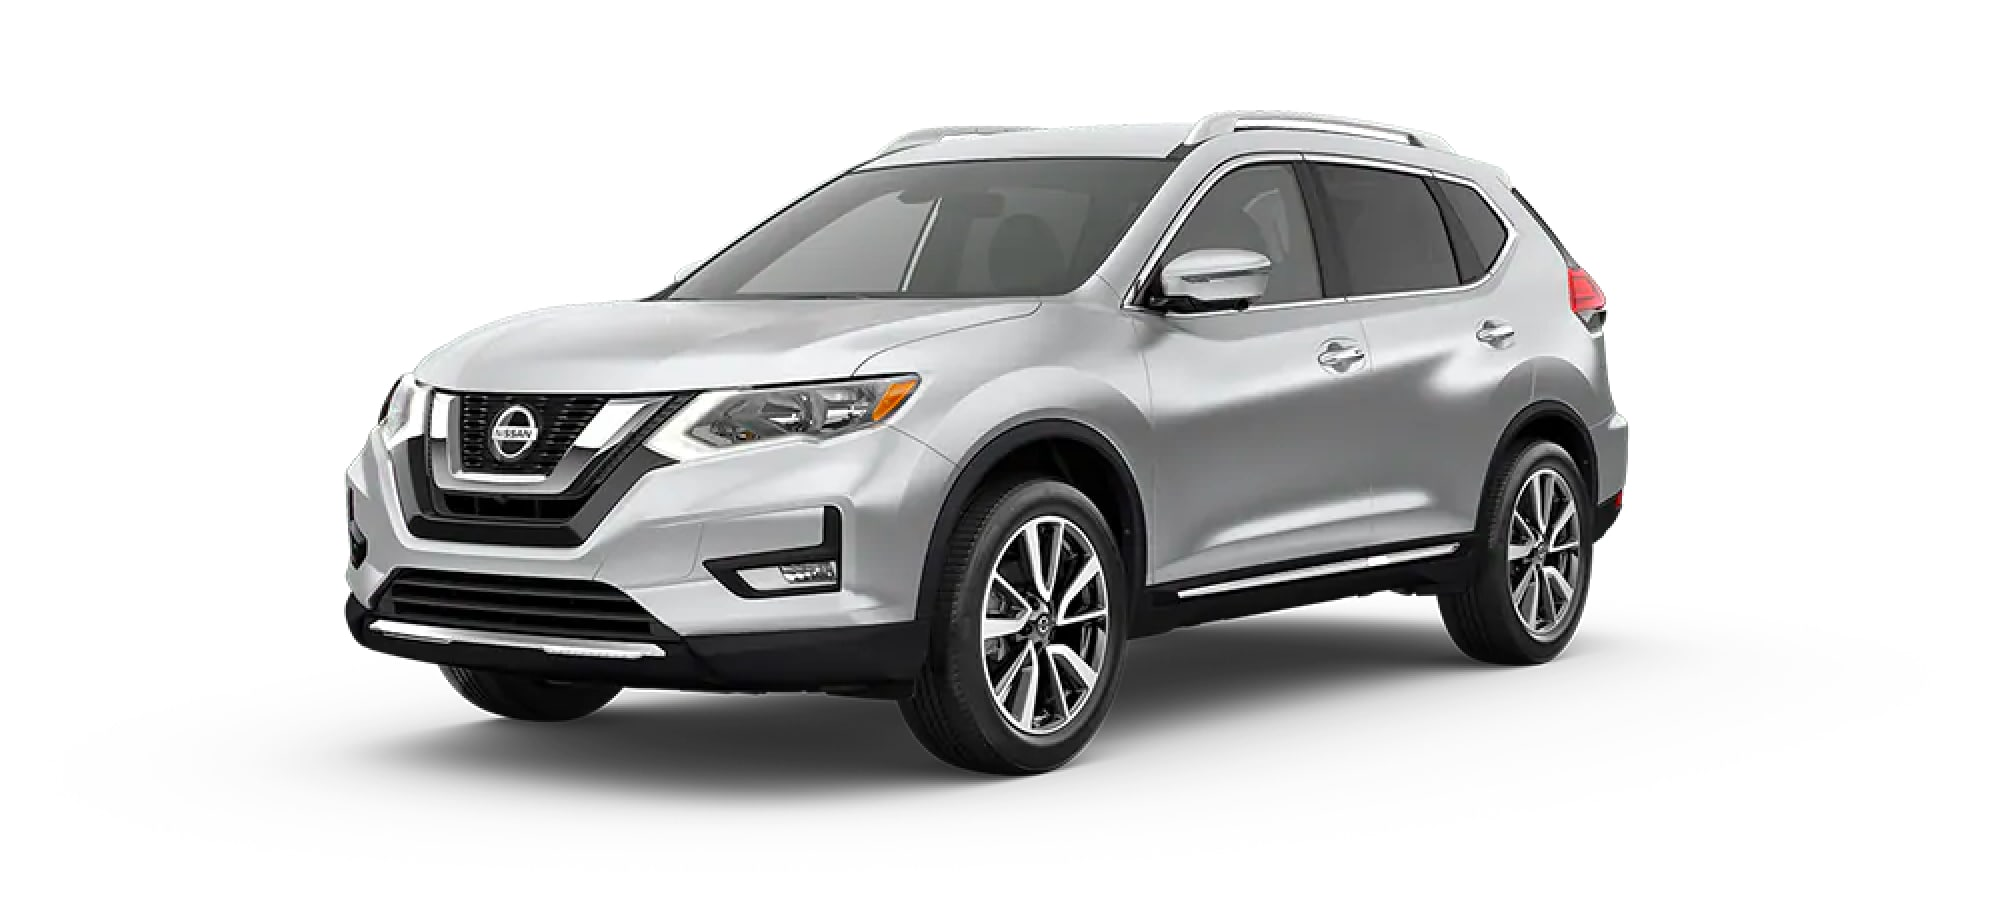 2020 Nissan Rogue in Brilliant Silver Metallic